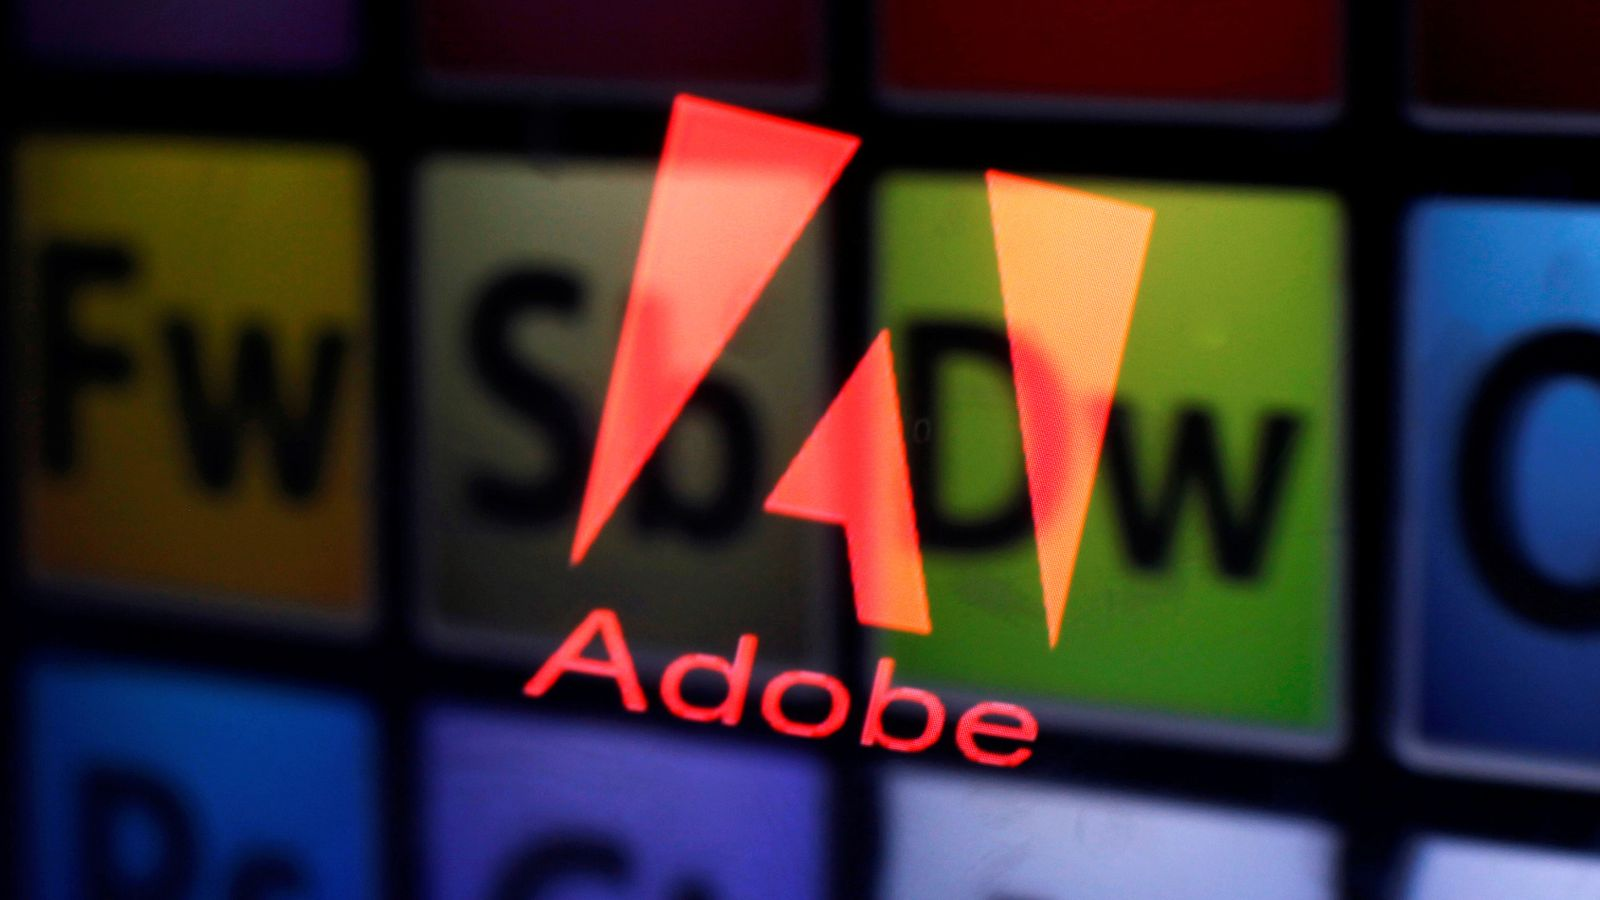 Internet users say farewell to Adobe Flash Player as it is officially discontinued